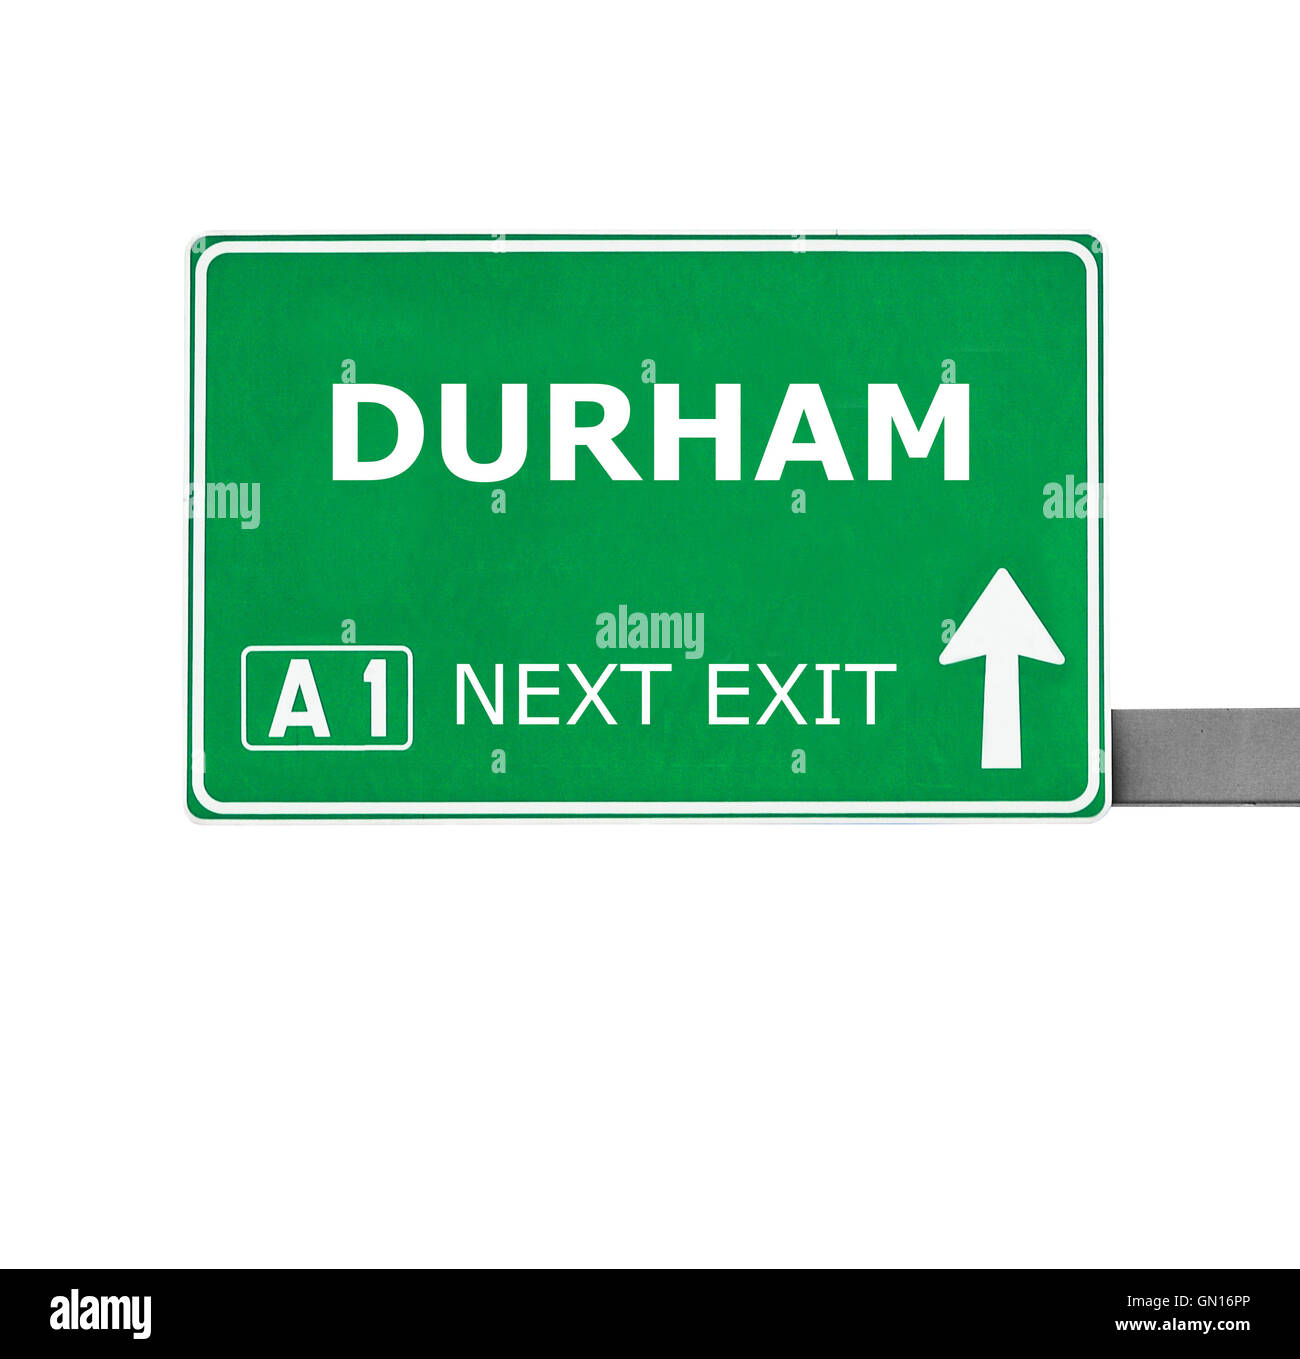 DURHAM road sign against isolated on white - Stock Image